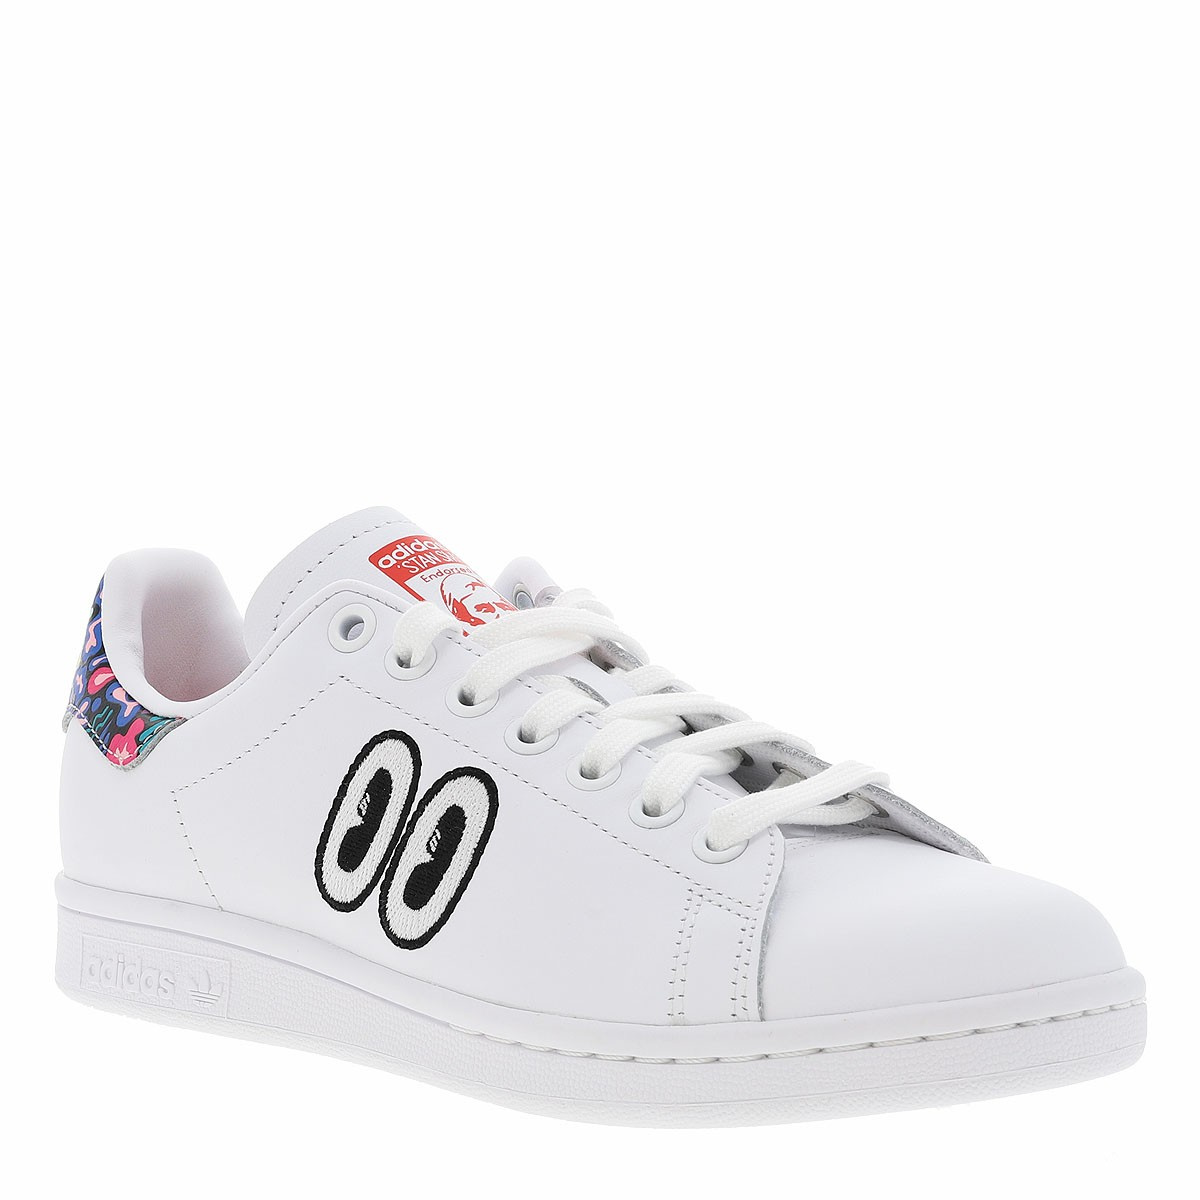 Originals W Stan Femme Blanc Adidas Baskets Smith uT5KJc31lF